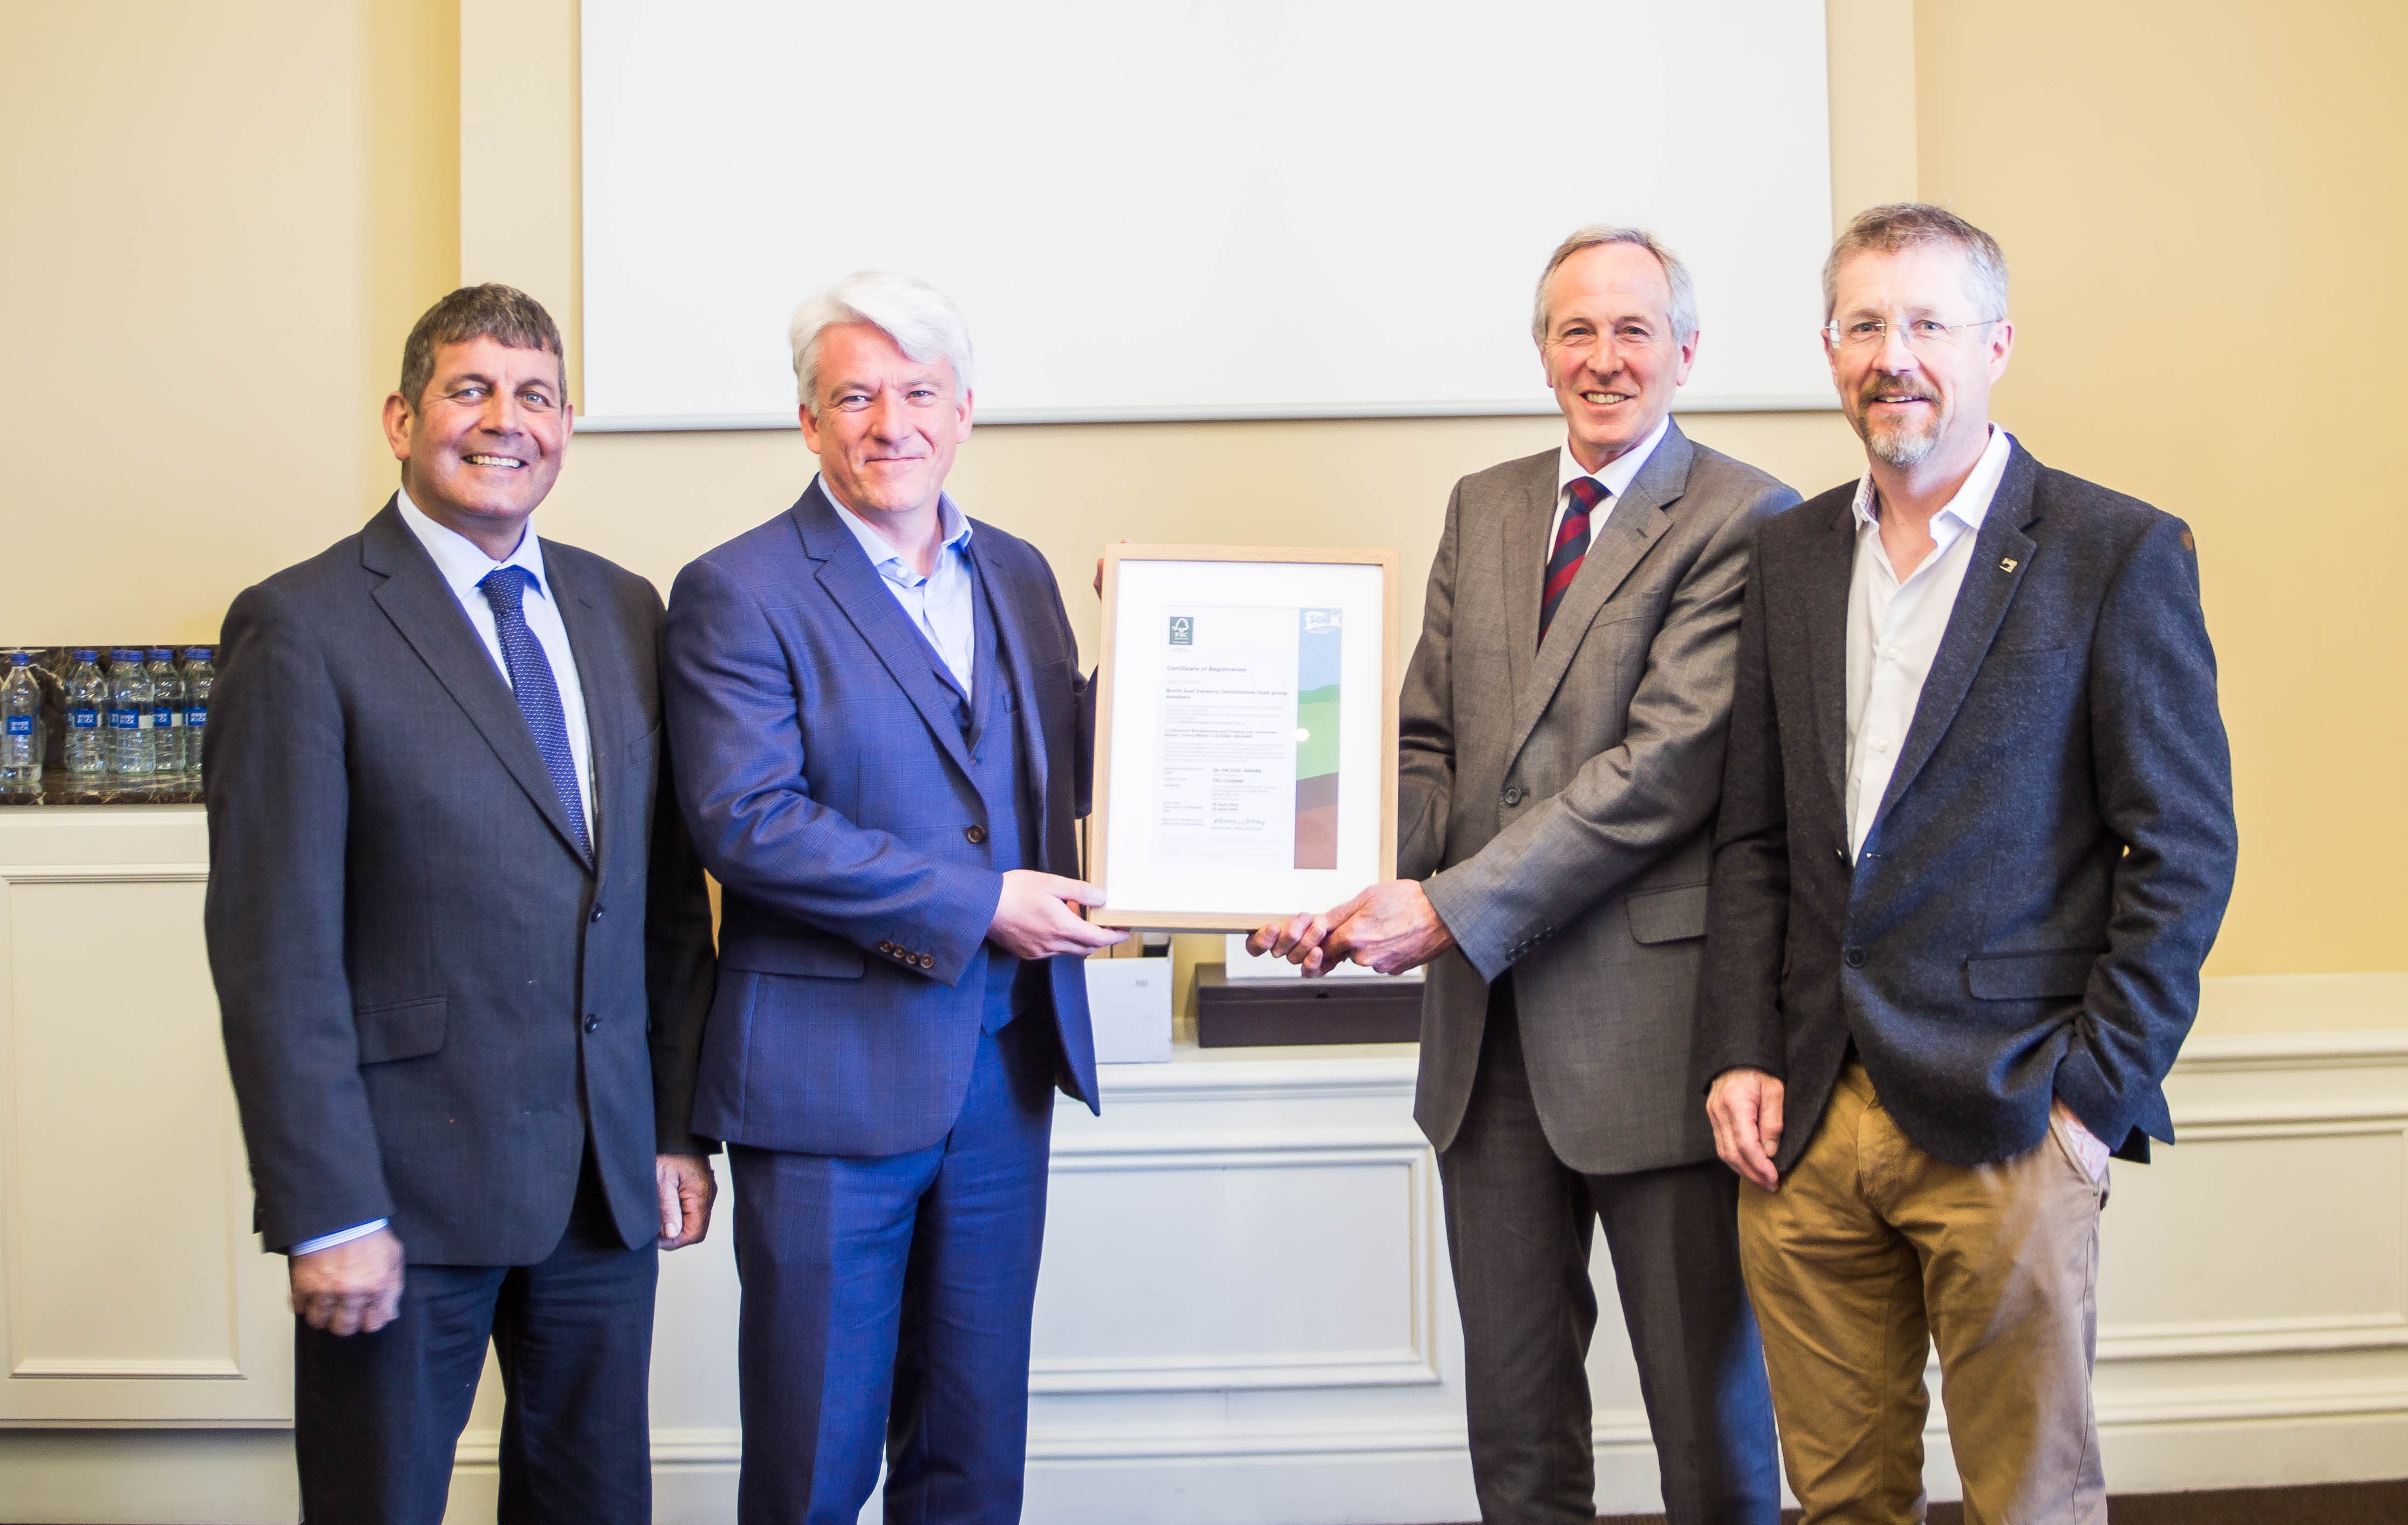 Presentation of Group certificate to NEFCC by Andy Grundy of Soil Association Certification in the presence of Minister of State, Andrew Doyle, TD